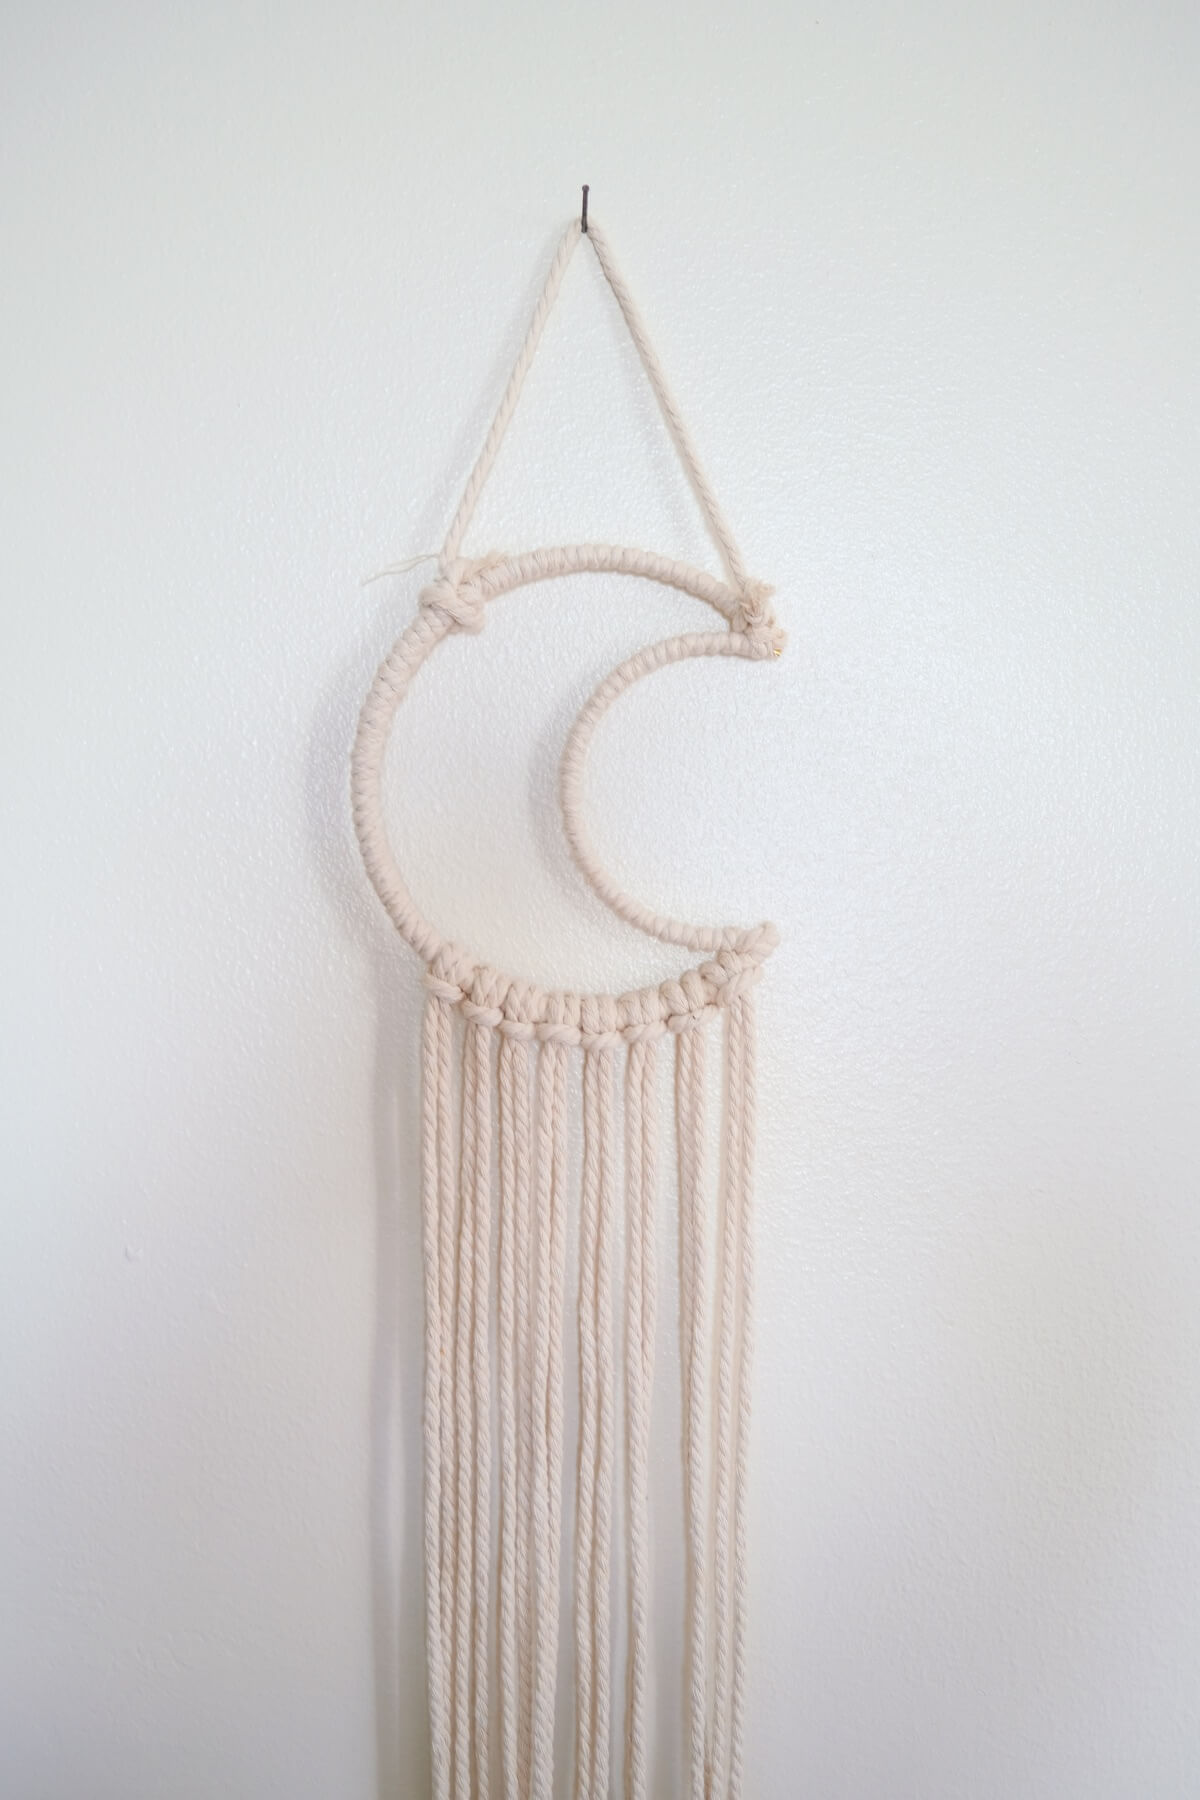 hang your macrame wall hanging on the wall